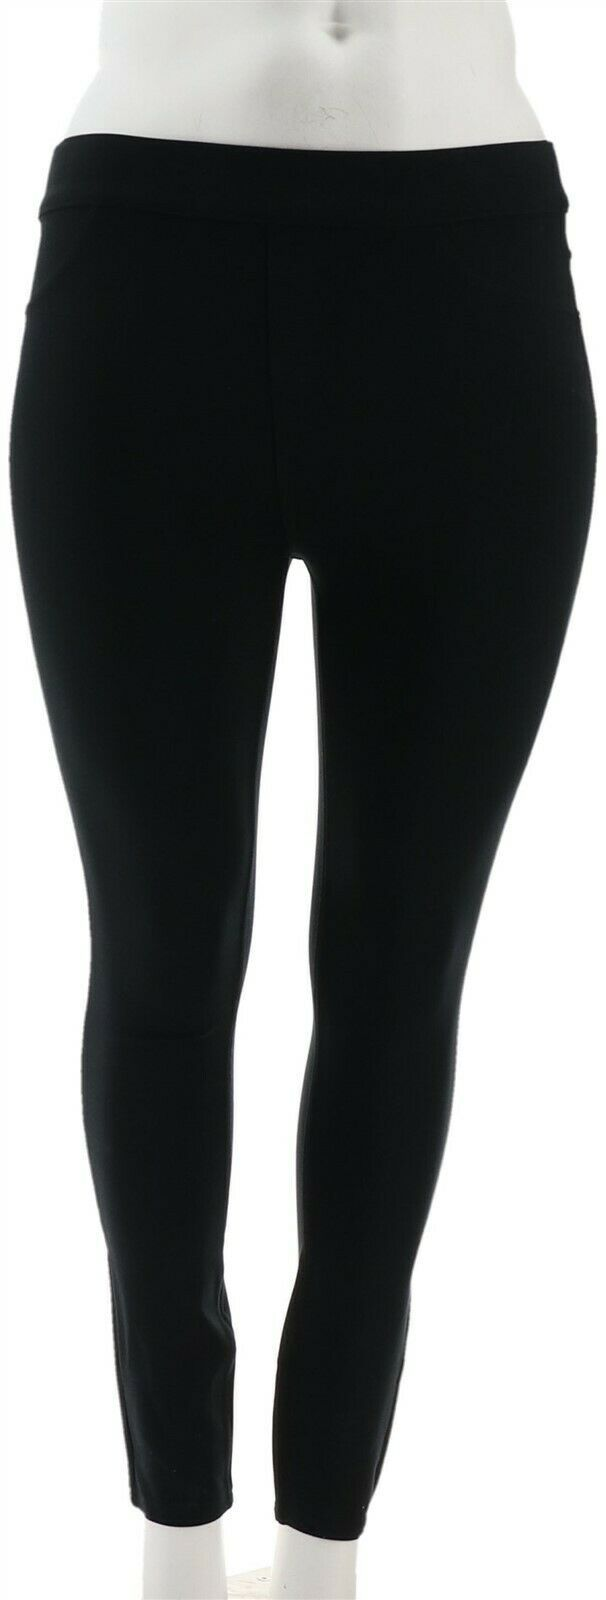 Primary image for Spanx Ponte Ankle-Length Leggings Very Black M NEW A309030